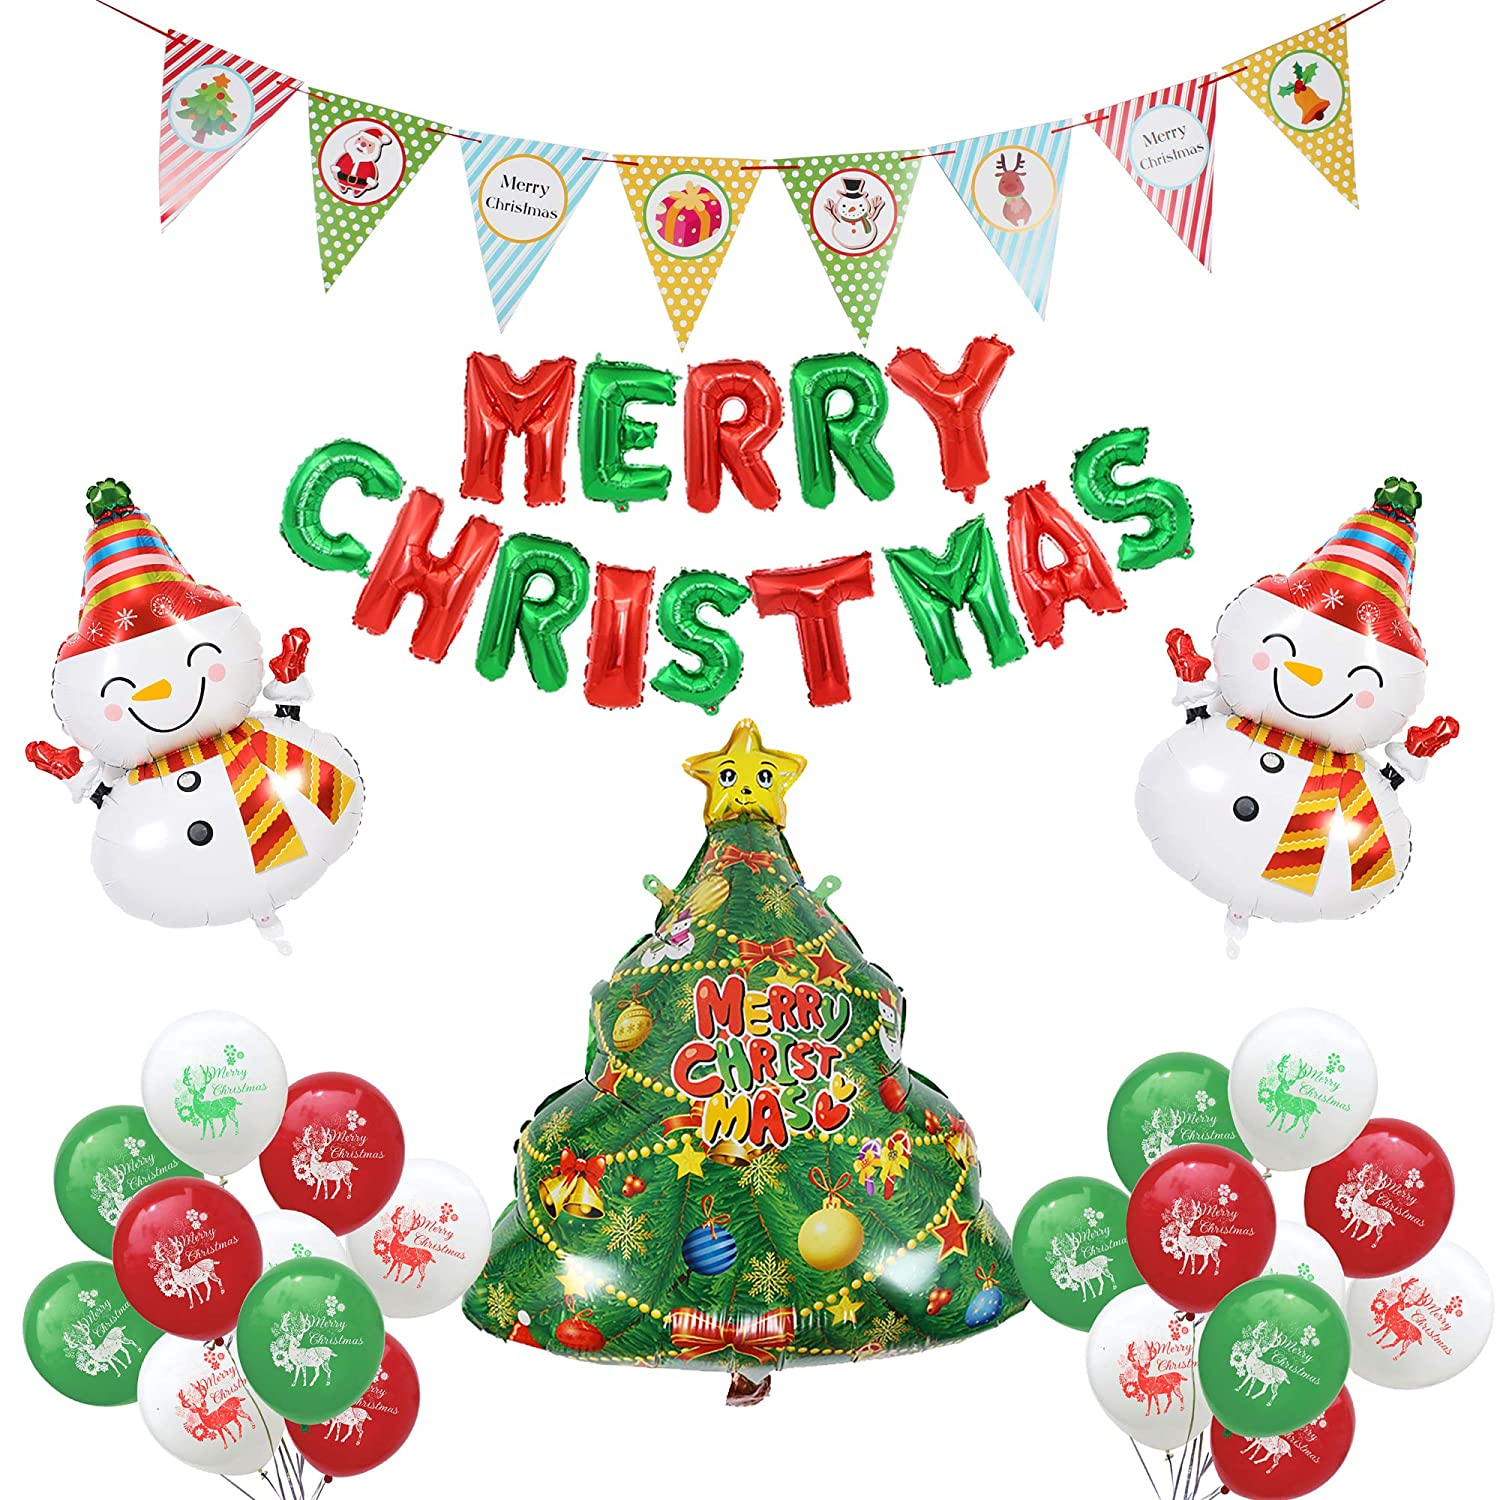 Christmas Party Images Clip Art.Merry Christmas Party Balloon Decoration Set Christmas Letter Balloon Cartoon Banner Snowman Santa